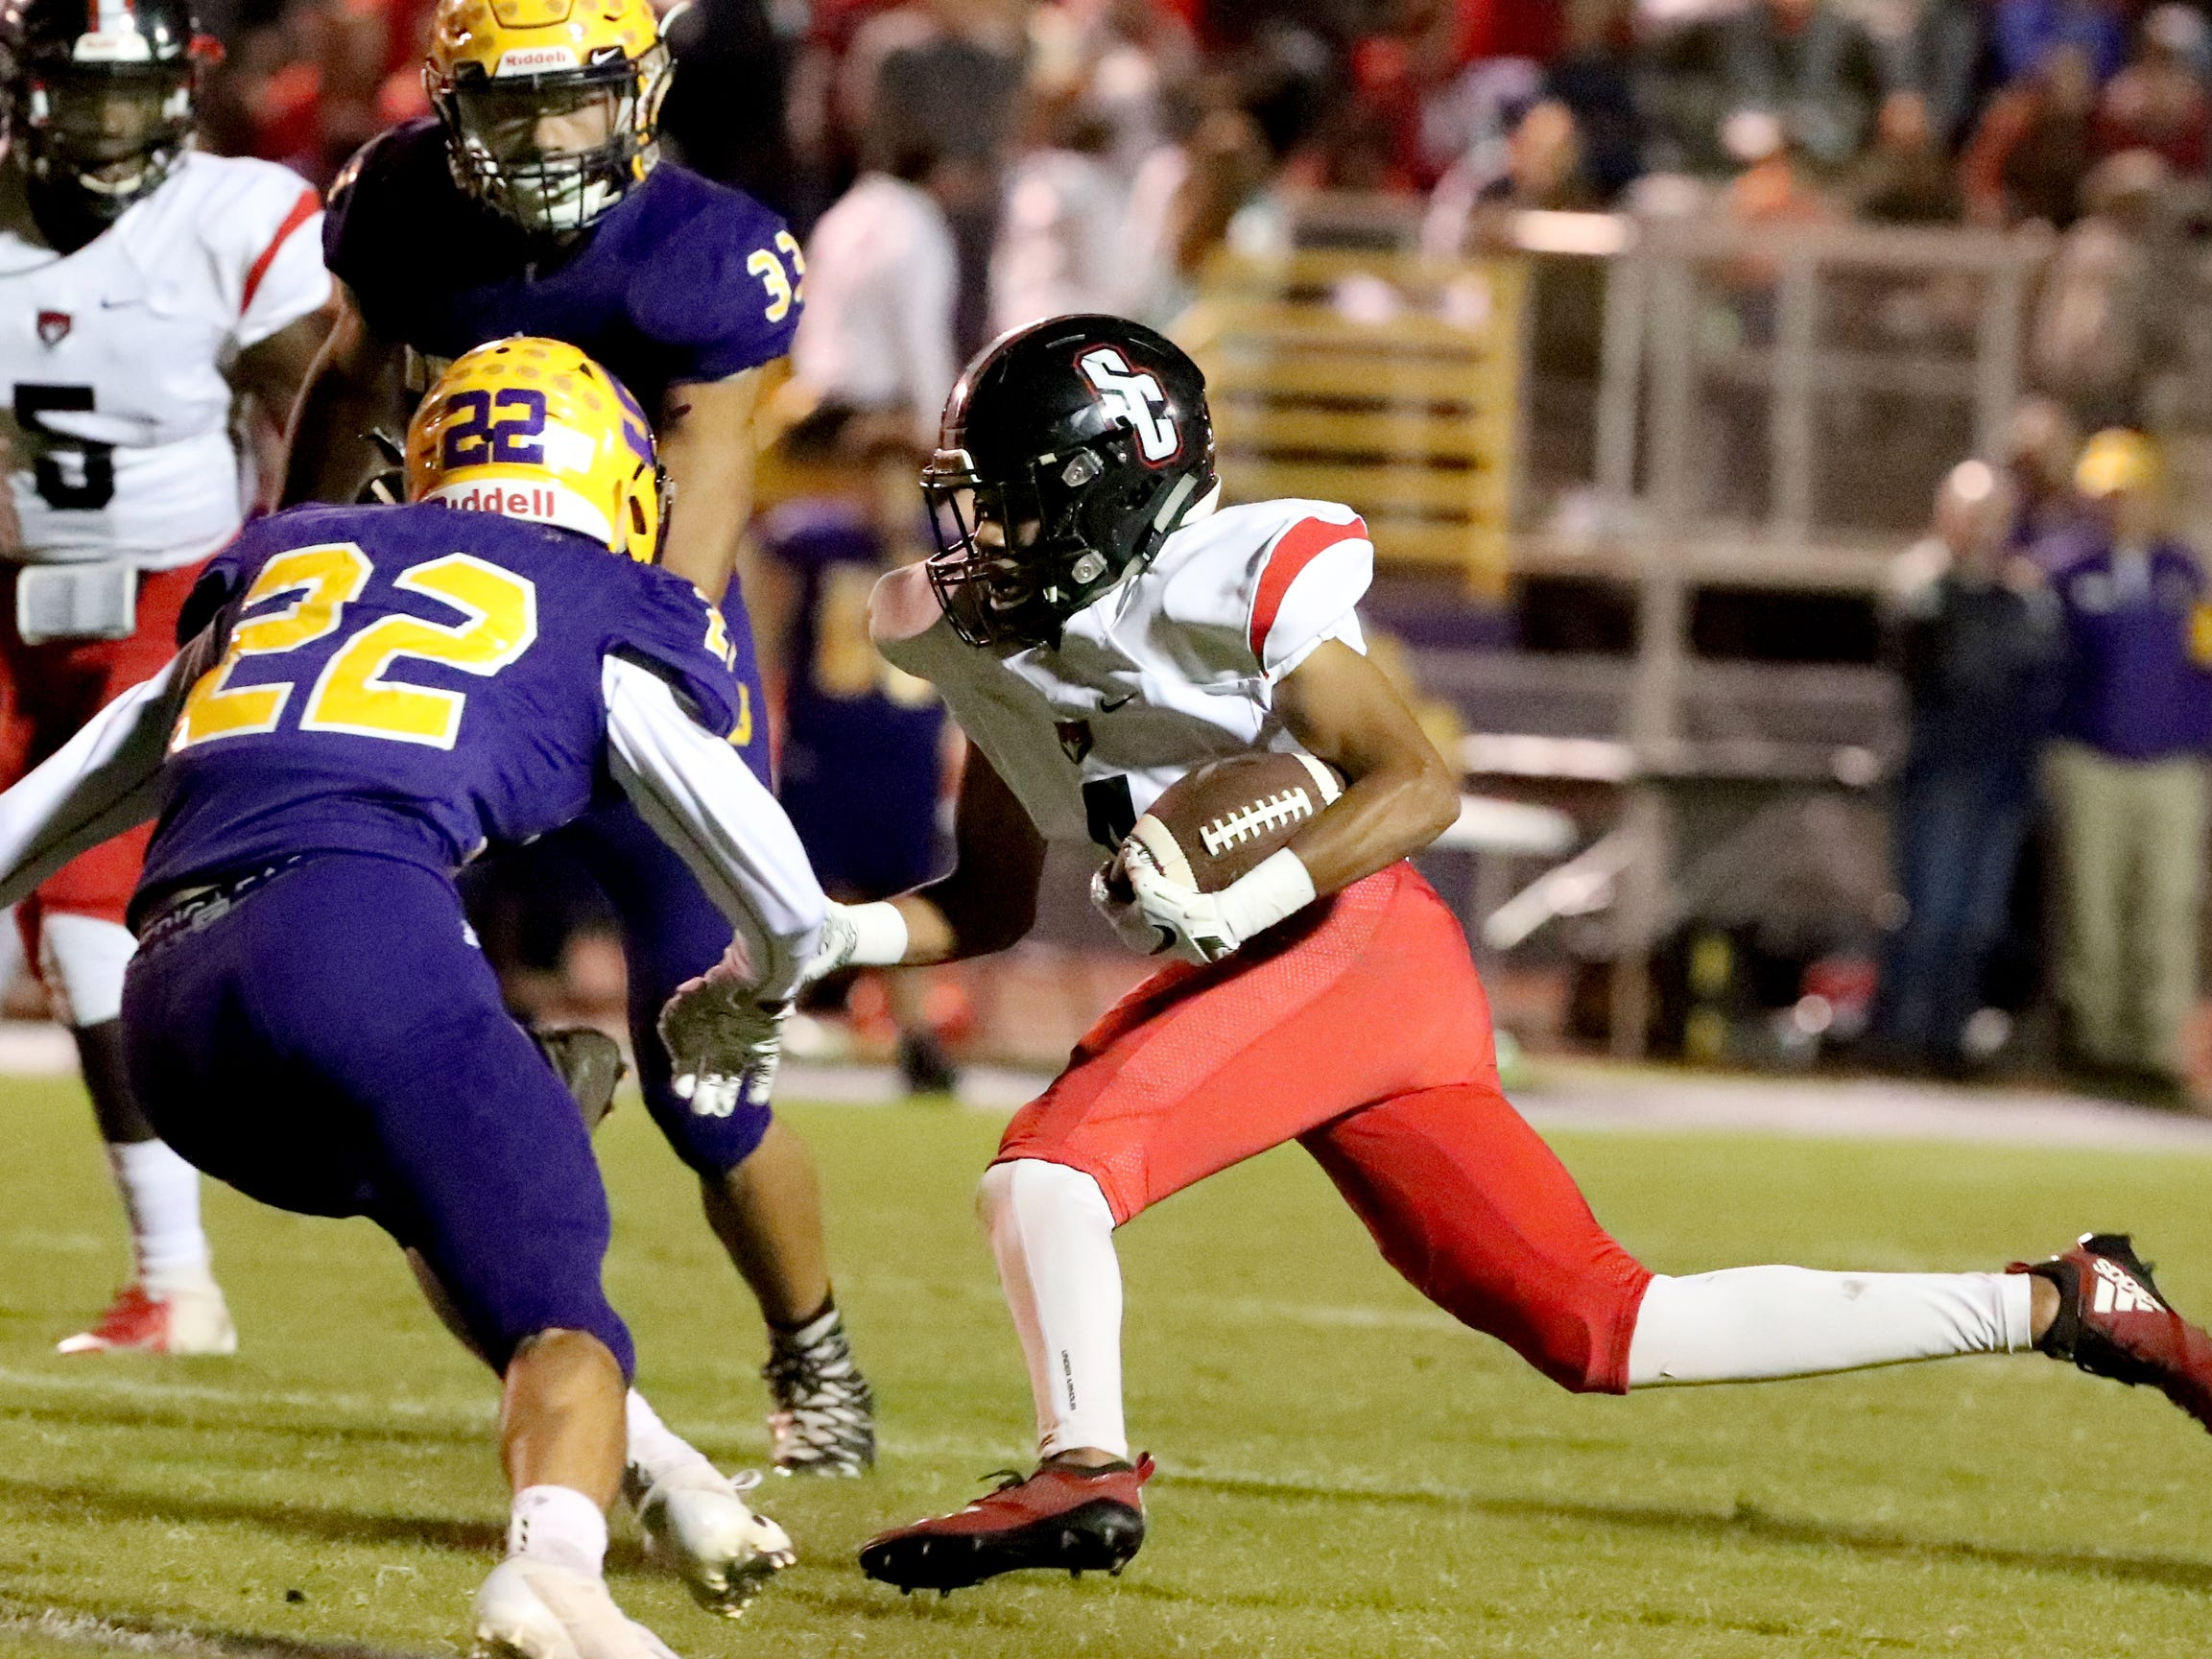 Stewarts Creek's Keo Polk (4) runs the ball as Smyrna's Emerson Combs (22) moves in for a tackle at Smyrna High School on Friday, Oct. 12, 2018.